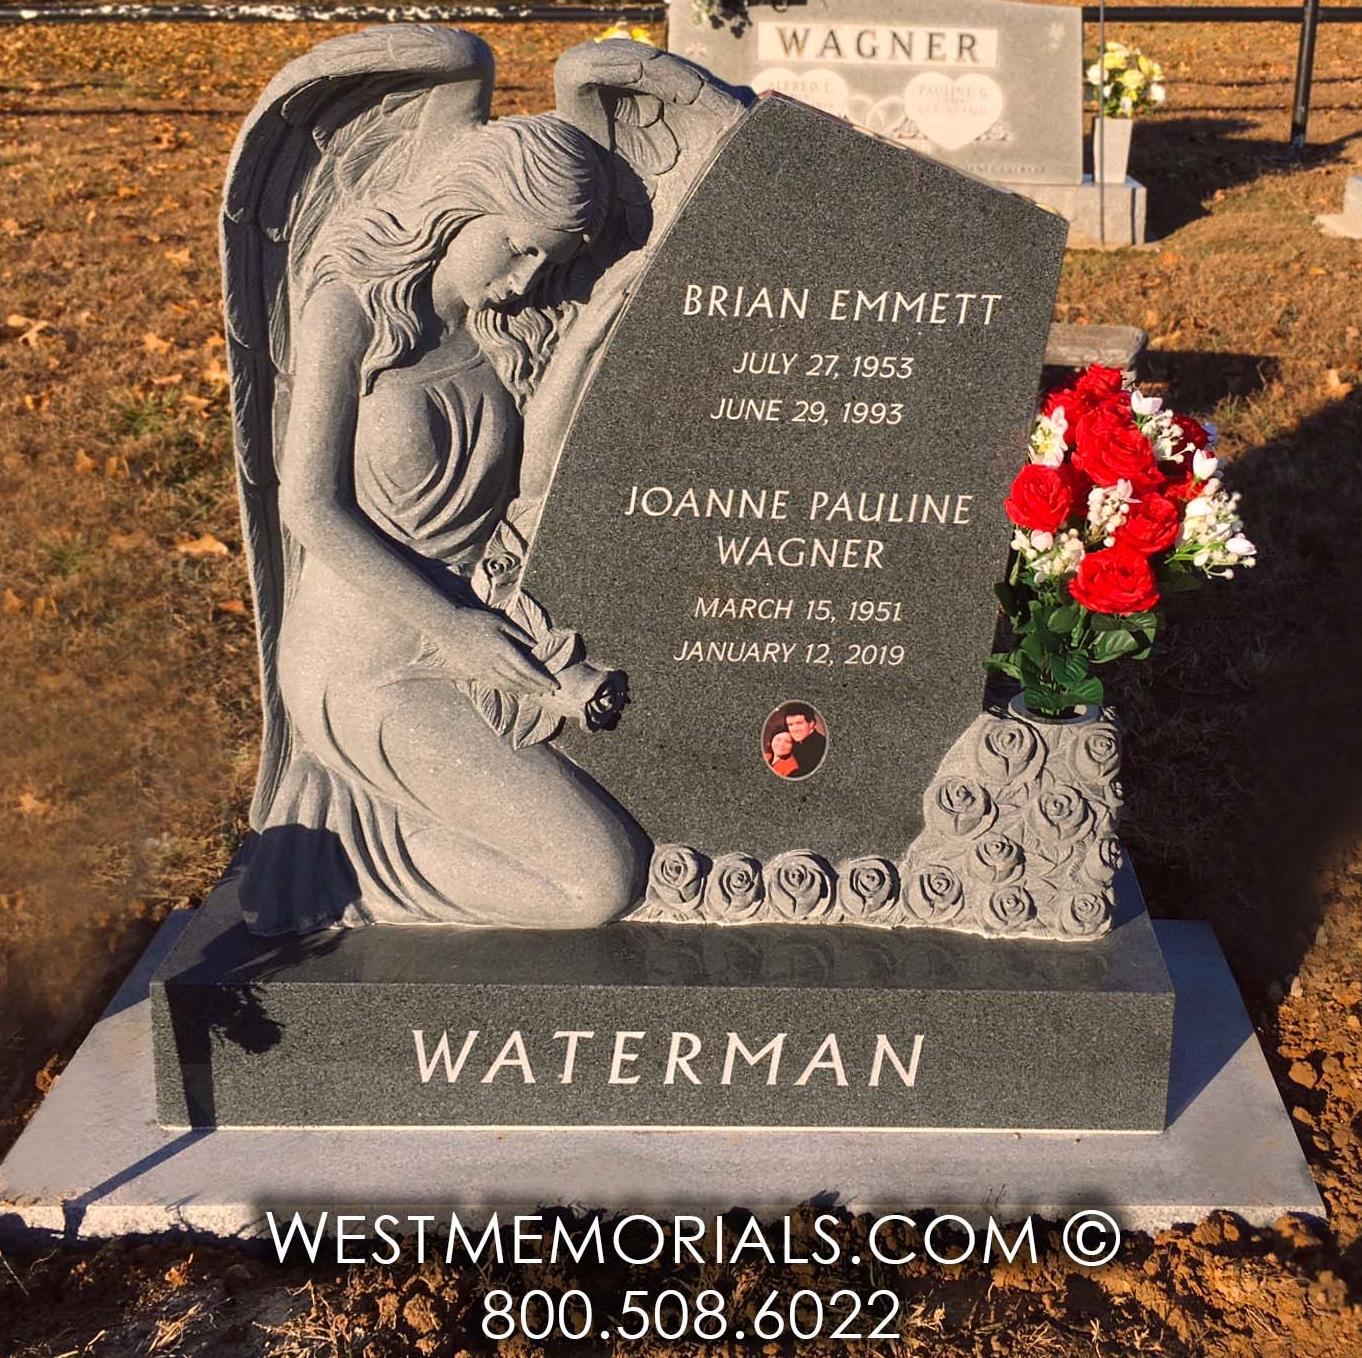 Waterman angel heaven wings roses charcoal gray granite headstones custom carved cemetery upright monument flowers purchase buy design